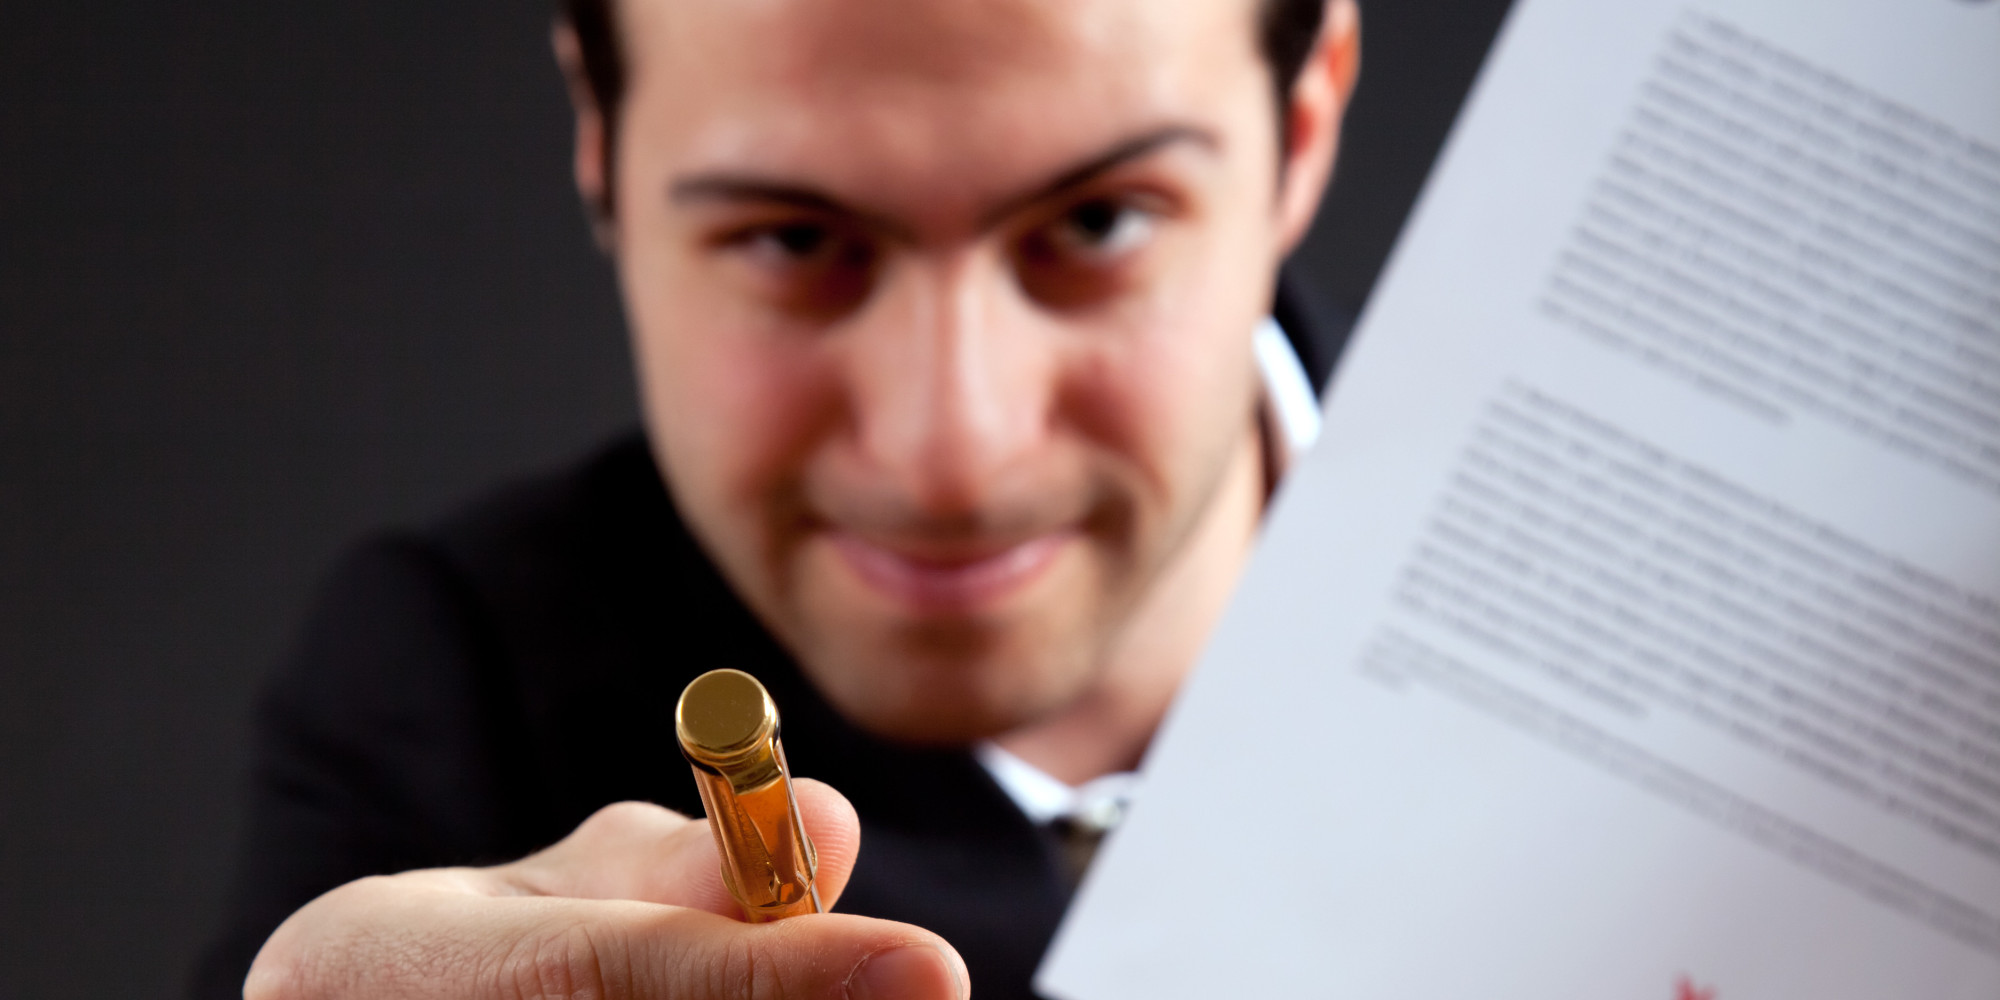 IRS Revenue Officer Installment Agreement Terms